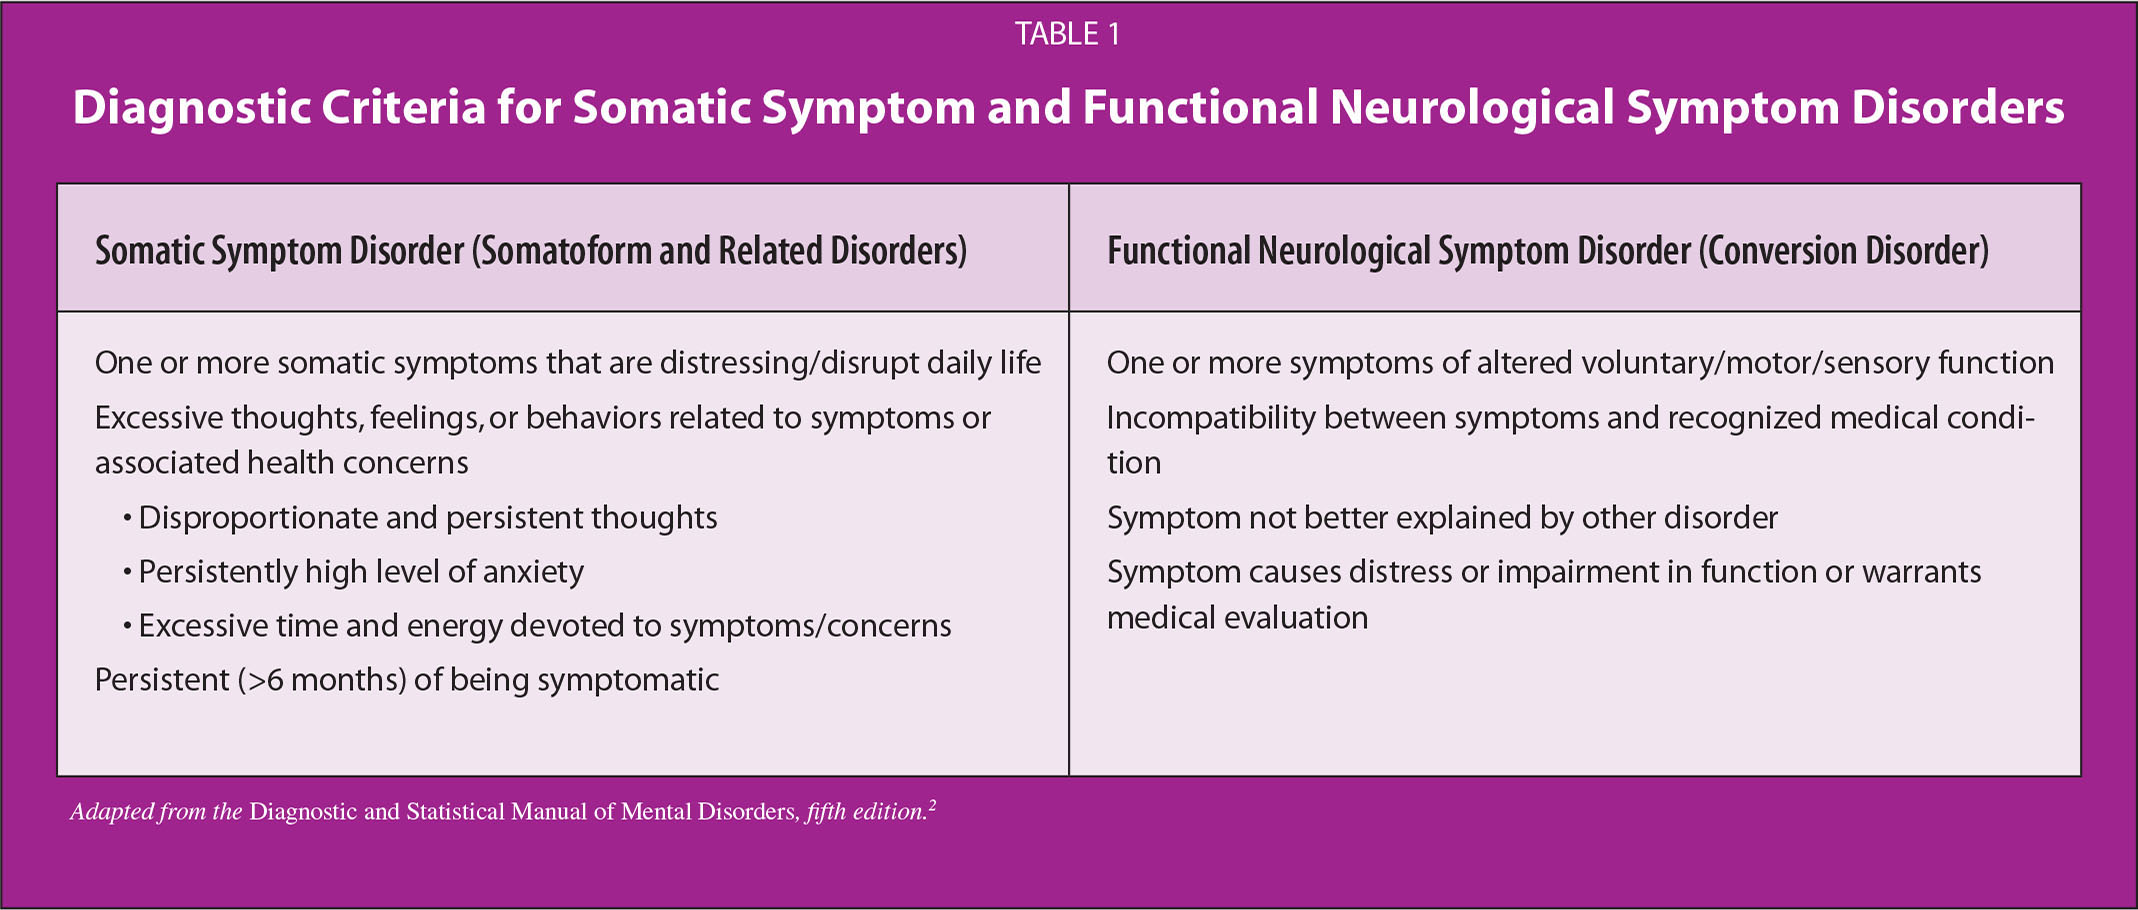 Diagnostic Criteria for Somatic Symptom and Functional Neurological Symptom Disorders